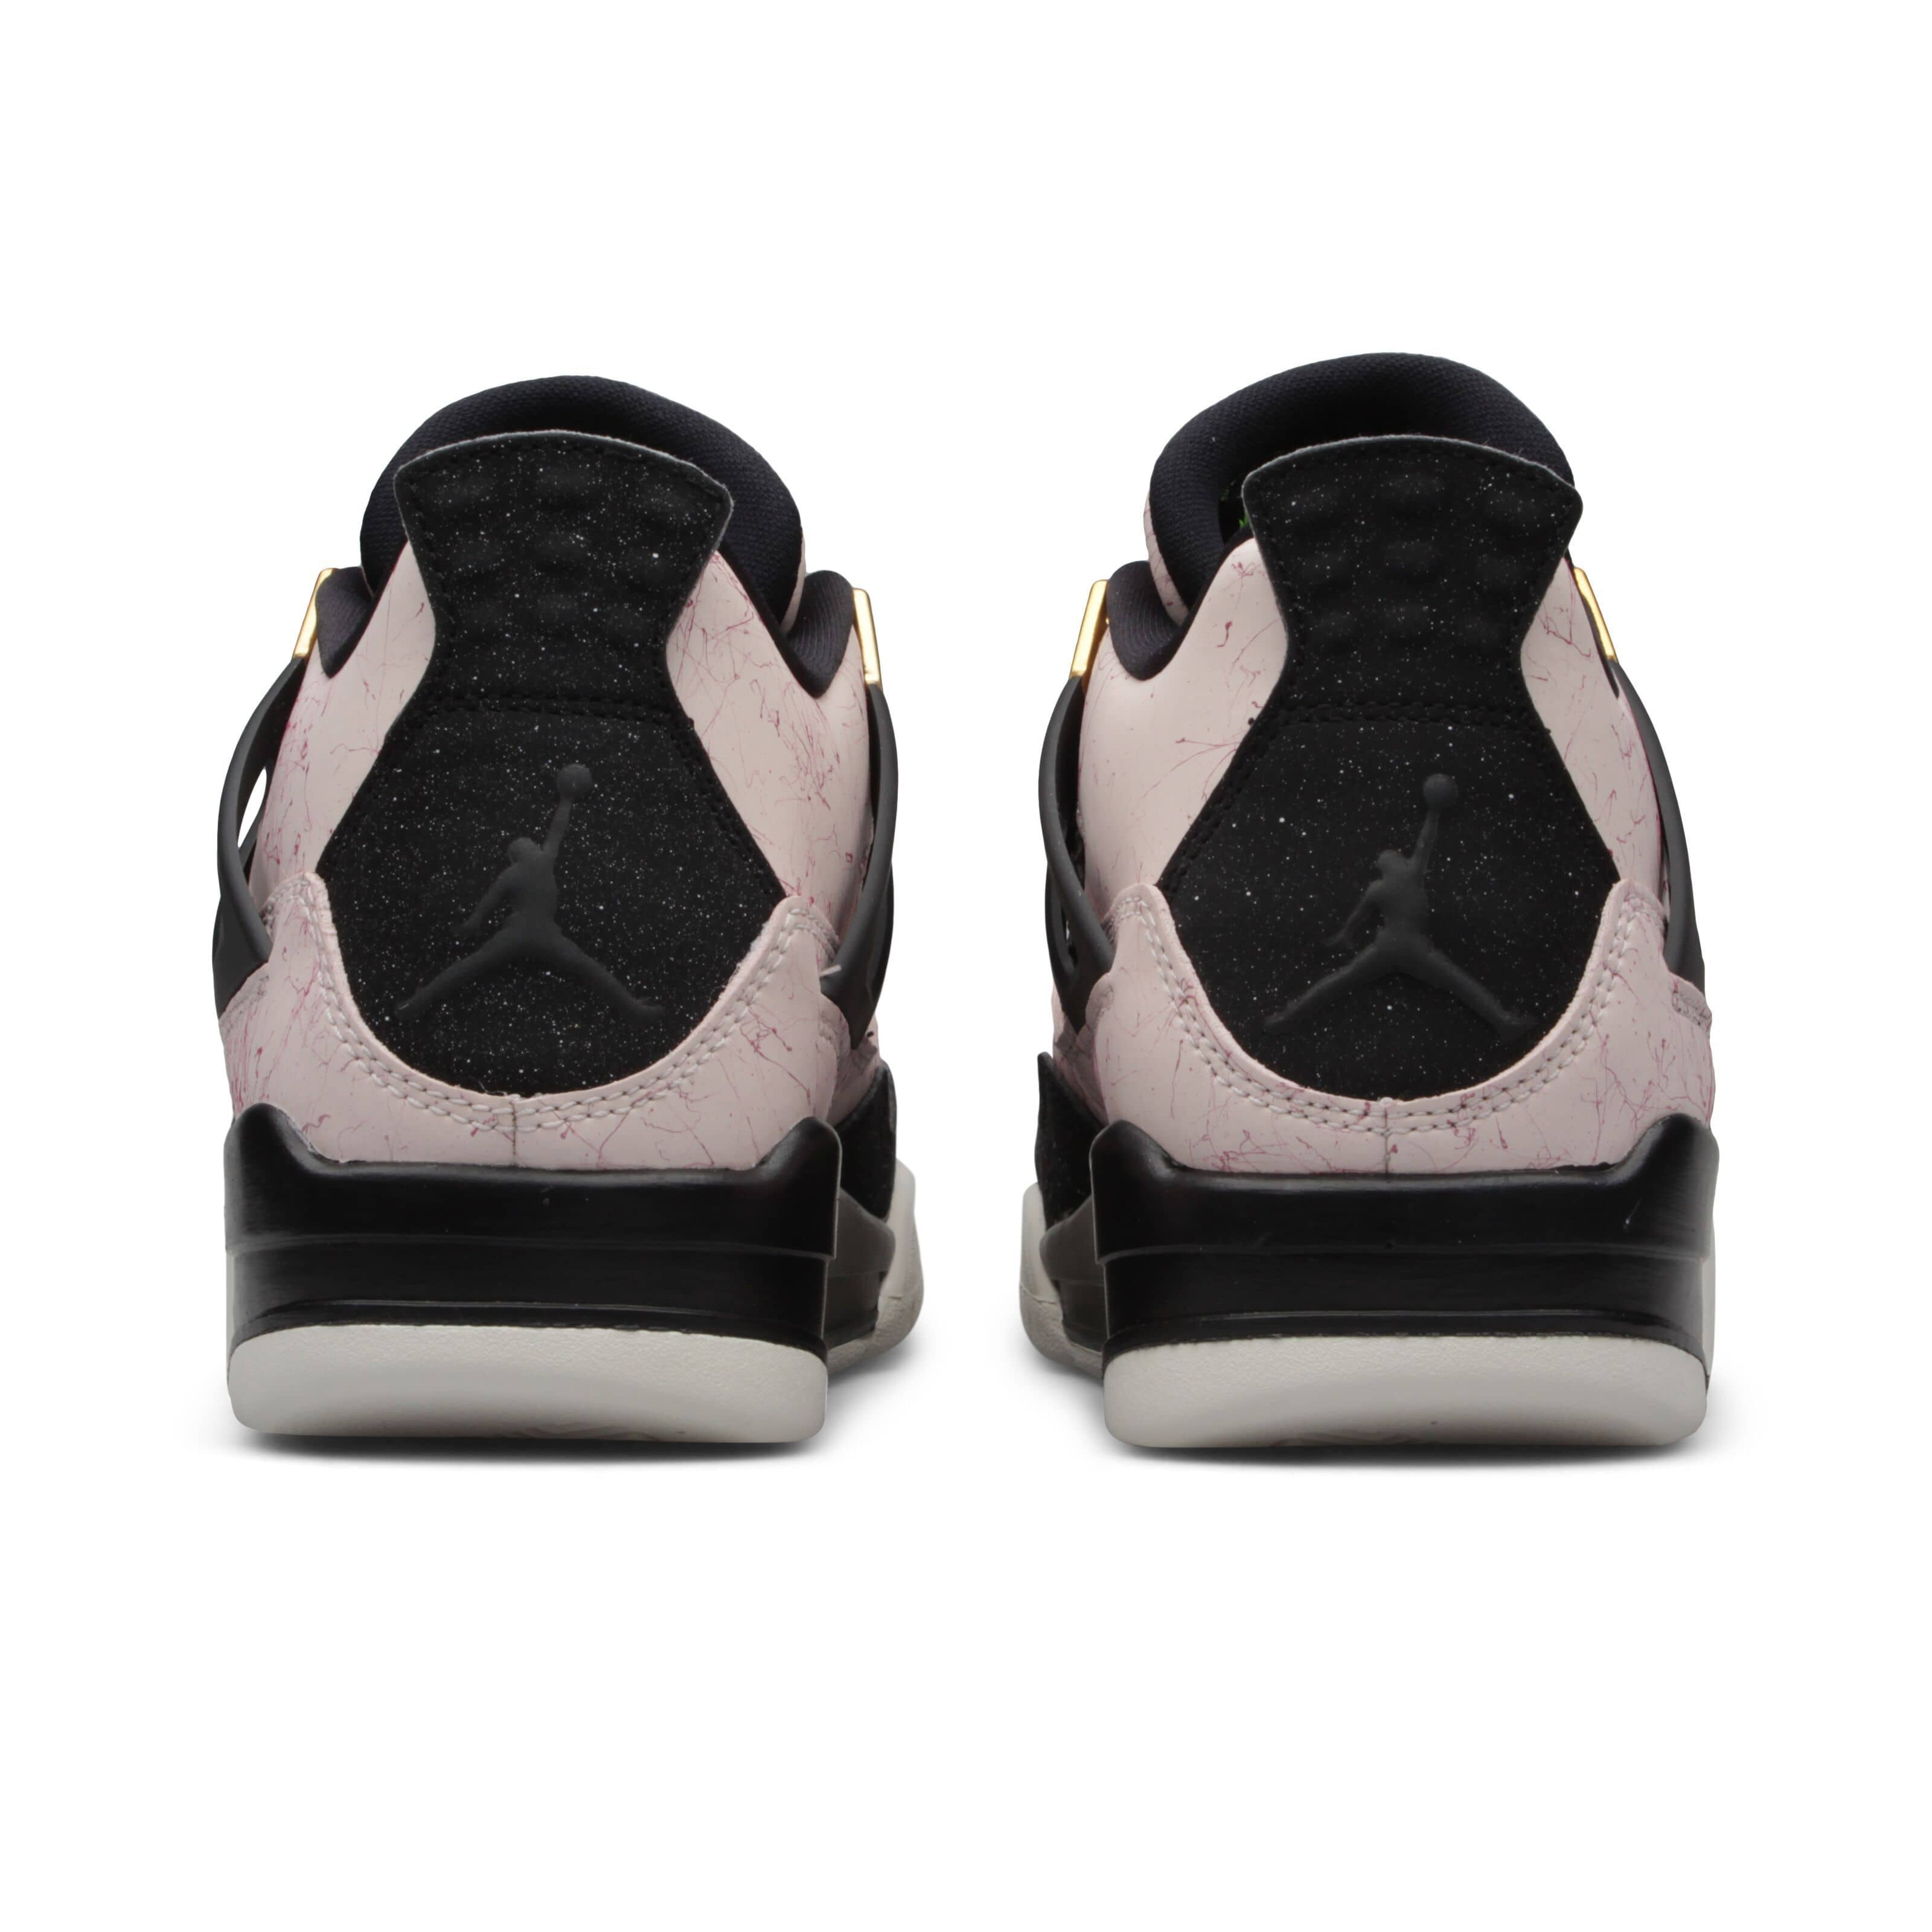 Air Jordan Shoes WOMEN'S AIR JORDAN 4 RETRO